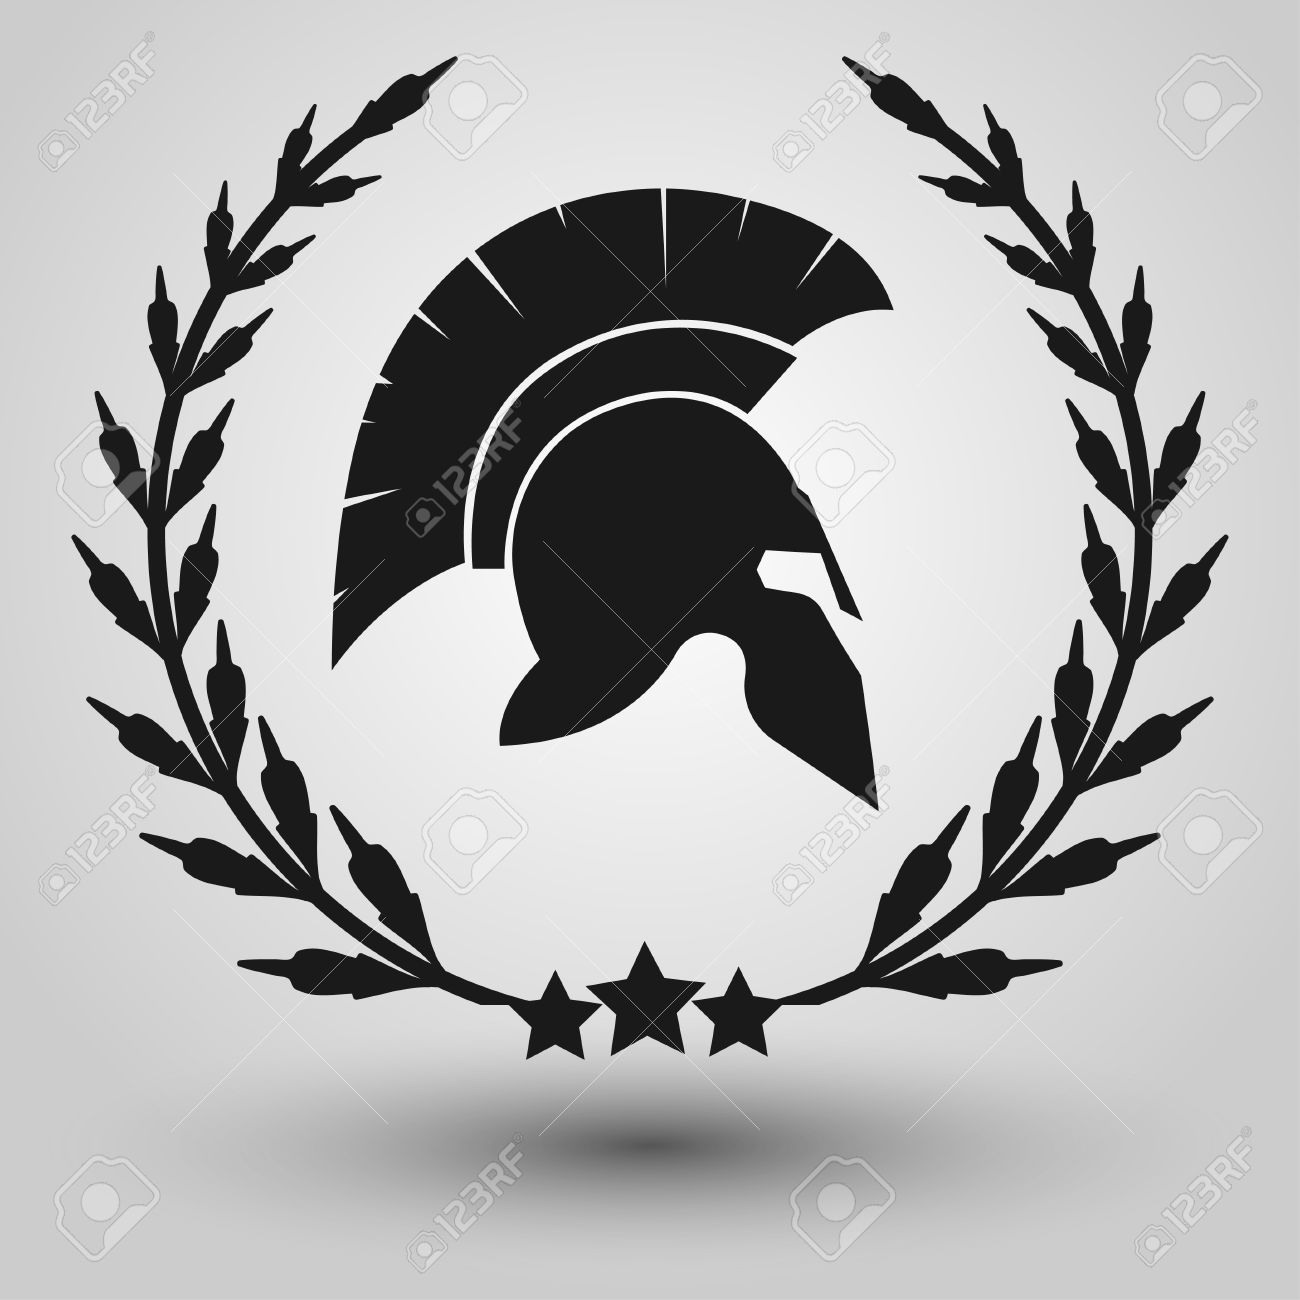 Spartan Helmet Silhouettes With Laurel Wreath Symbol Of Gladiator Soldier Or Greek Warrior Roman